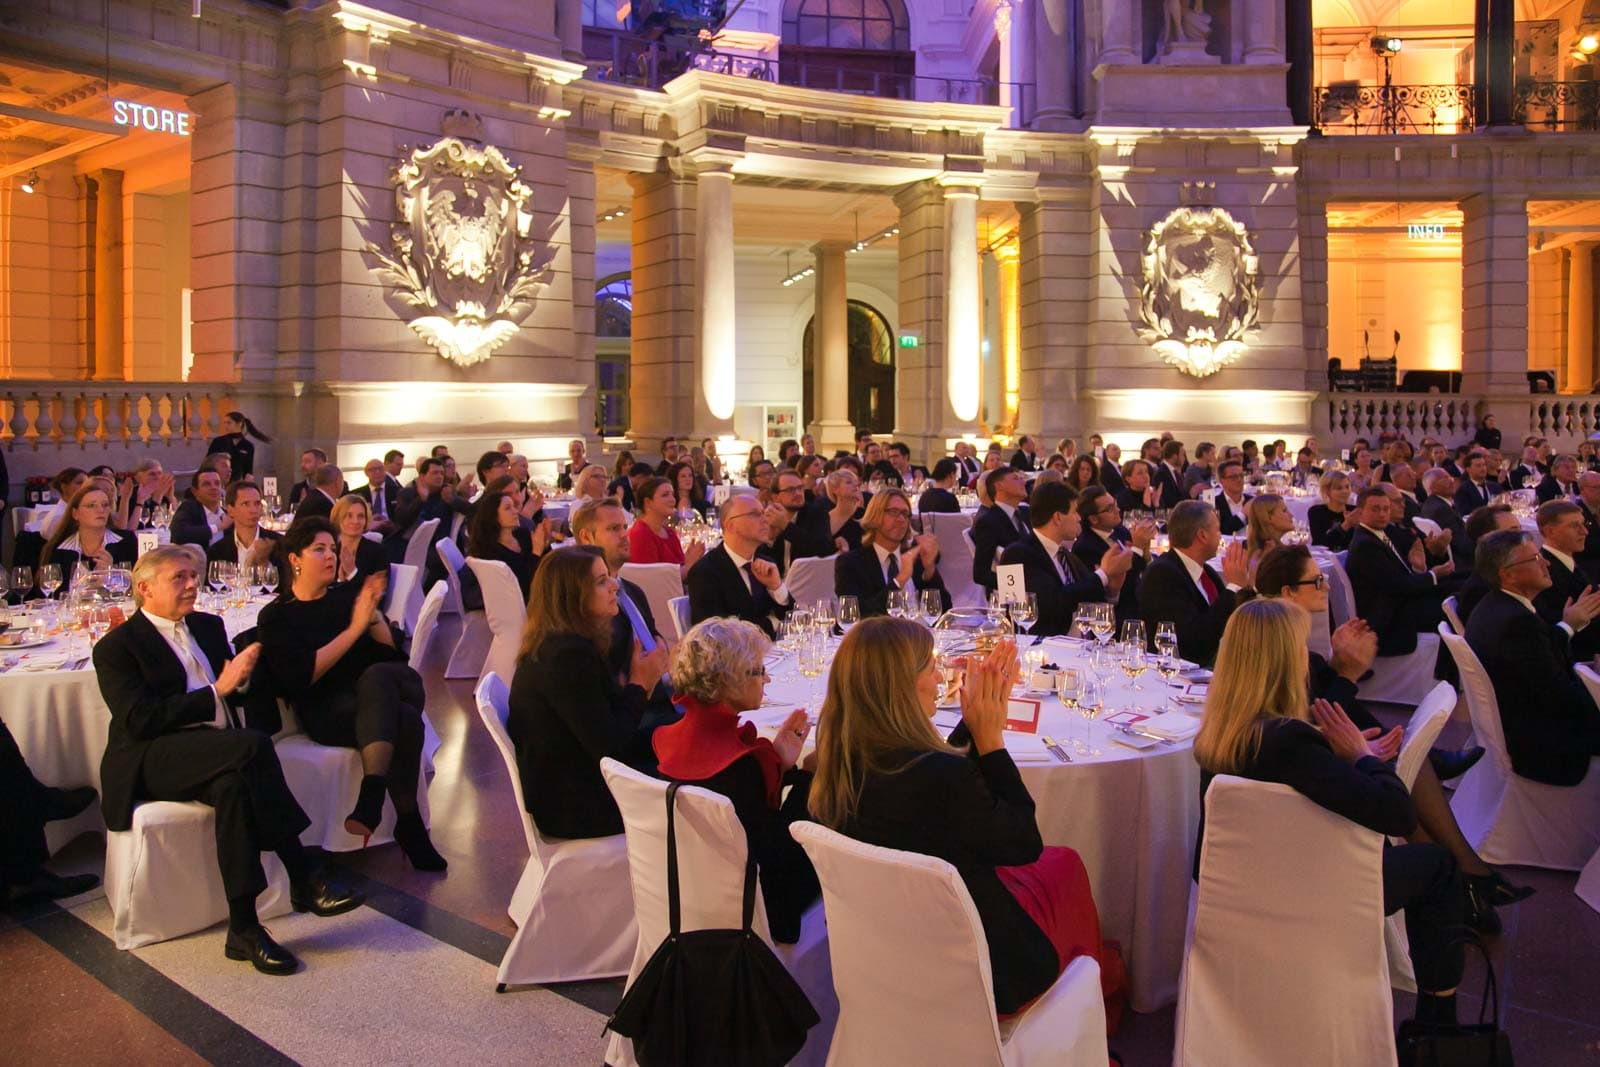 eventfotograf-berlin-econ-award-25.jpg